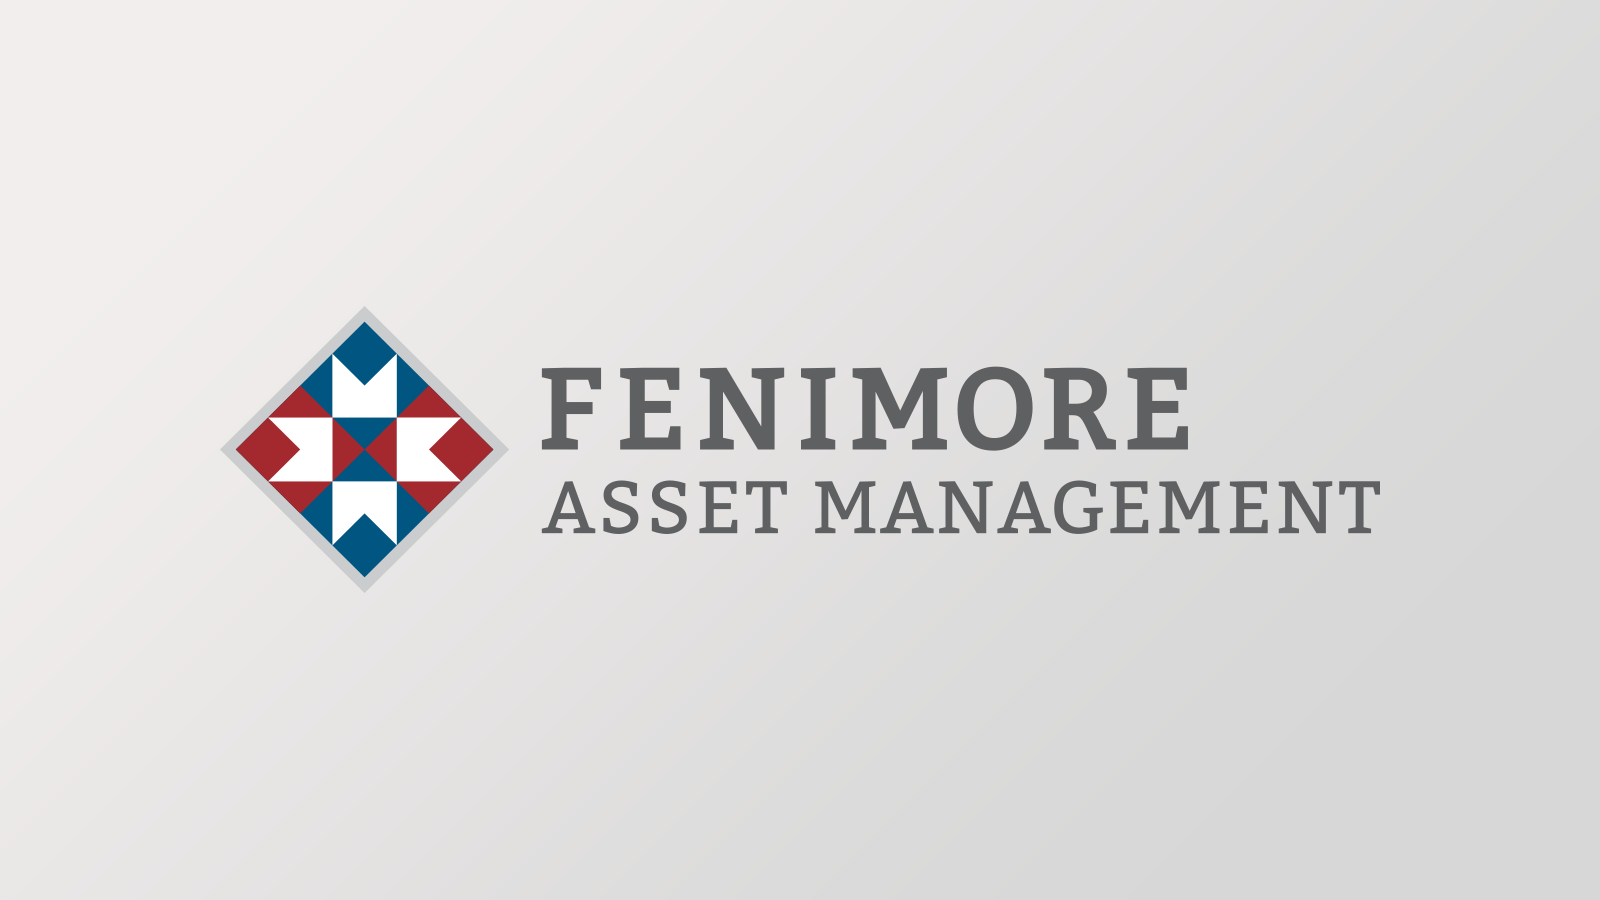 Fenimore Asset Management